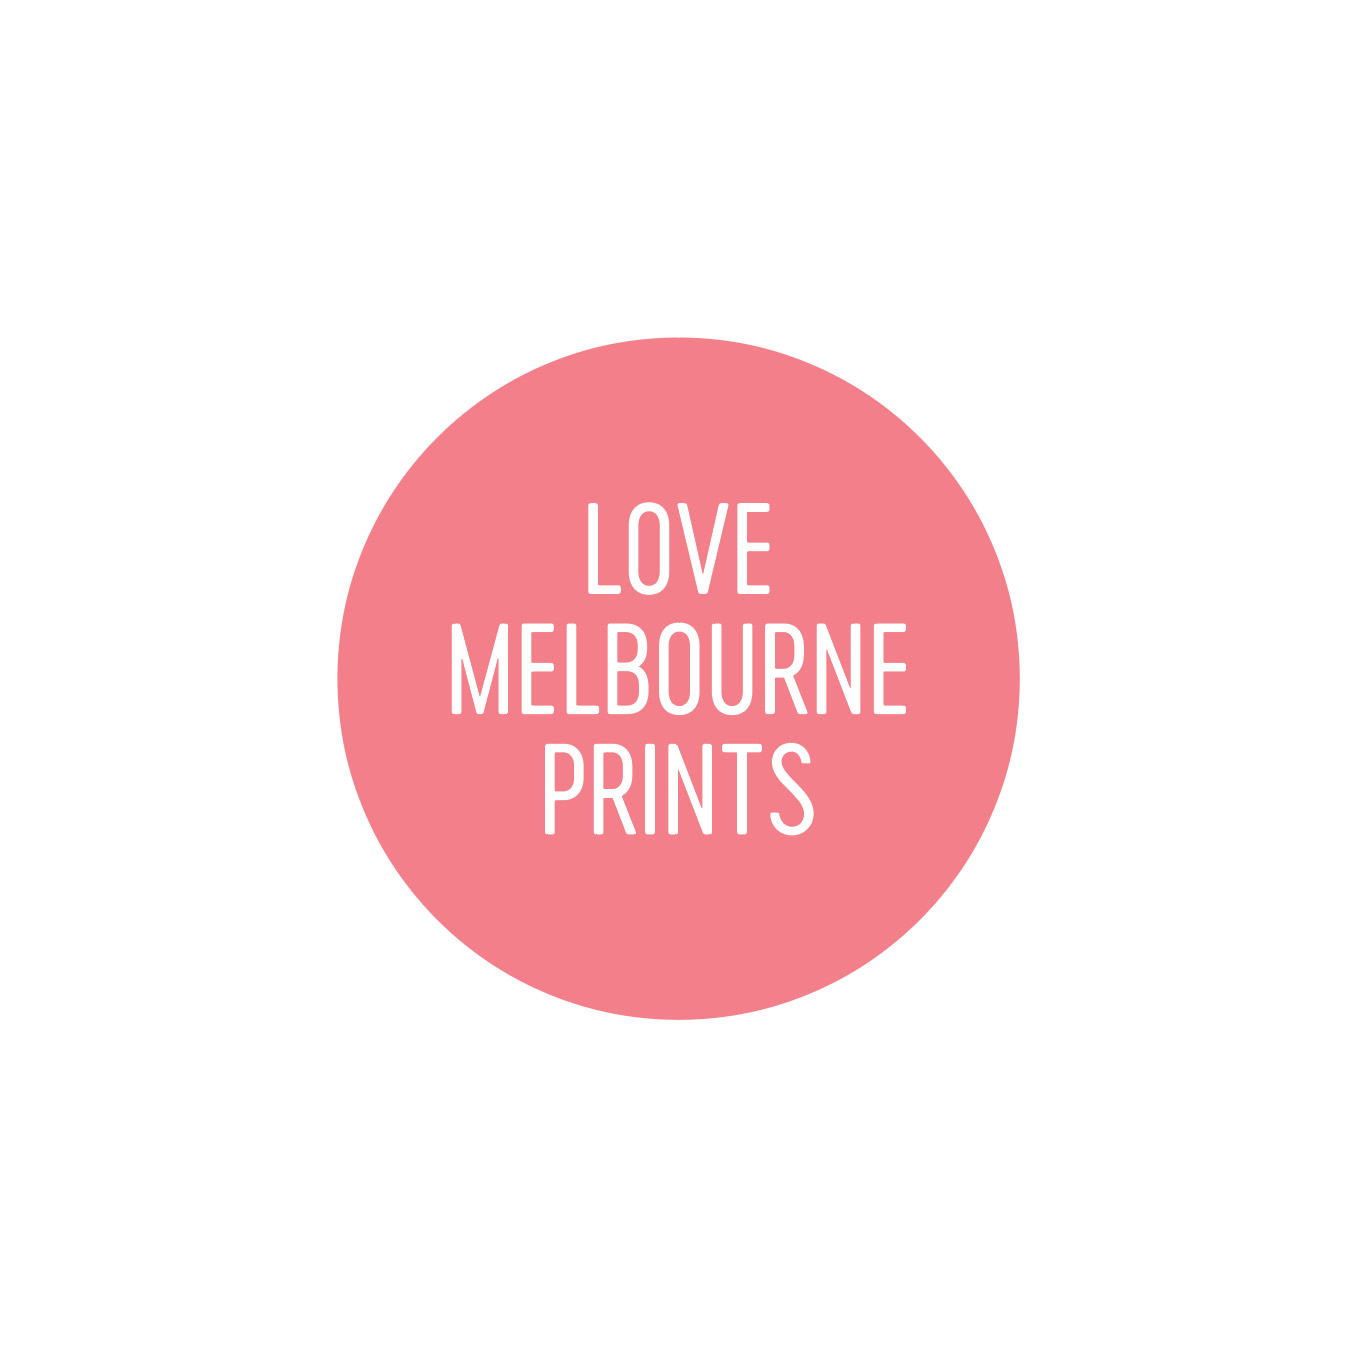 Love Melbourne Prints